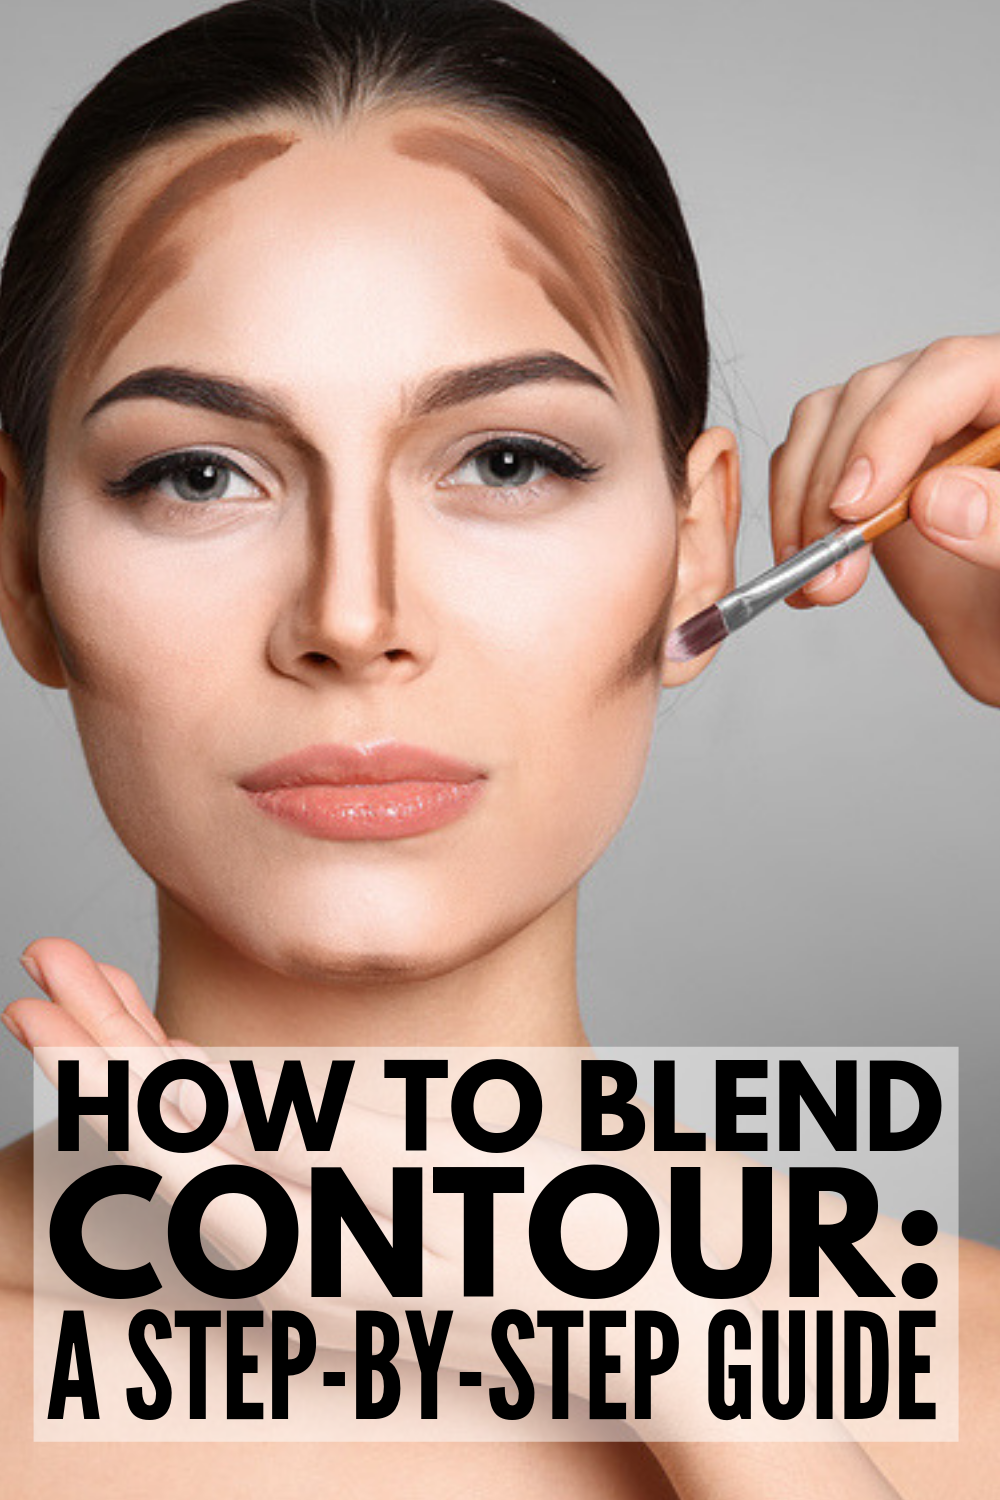 How to Blend Contour: A Step by Step Guide | If you're looking for makeup tips and tutorials to teach you how to blend contour like Kim Kardashian, we've got you covered! From choosing the right products (cream or blush?!), to working with brushes and sponges, to figuring out the best contour application techniques for your face shape, to knowing where to apply contour and highlight, we'll teach you how to get a sculpted look you'll love! #howtocontour #contourmakeup #contour #contouring